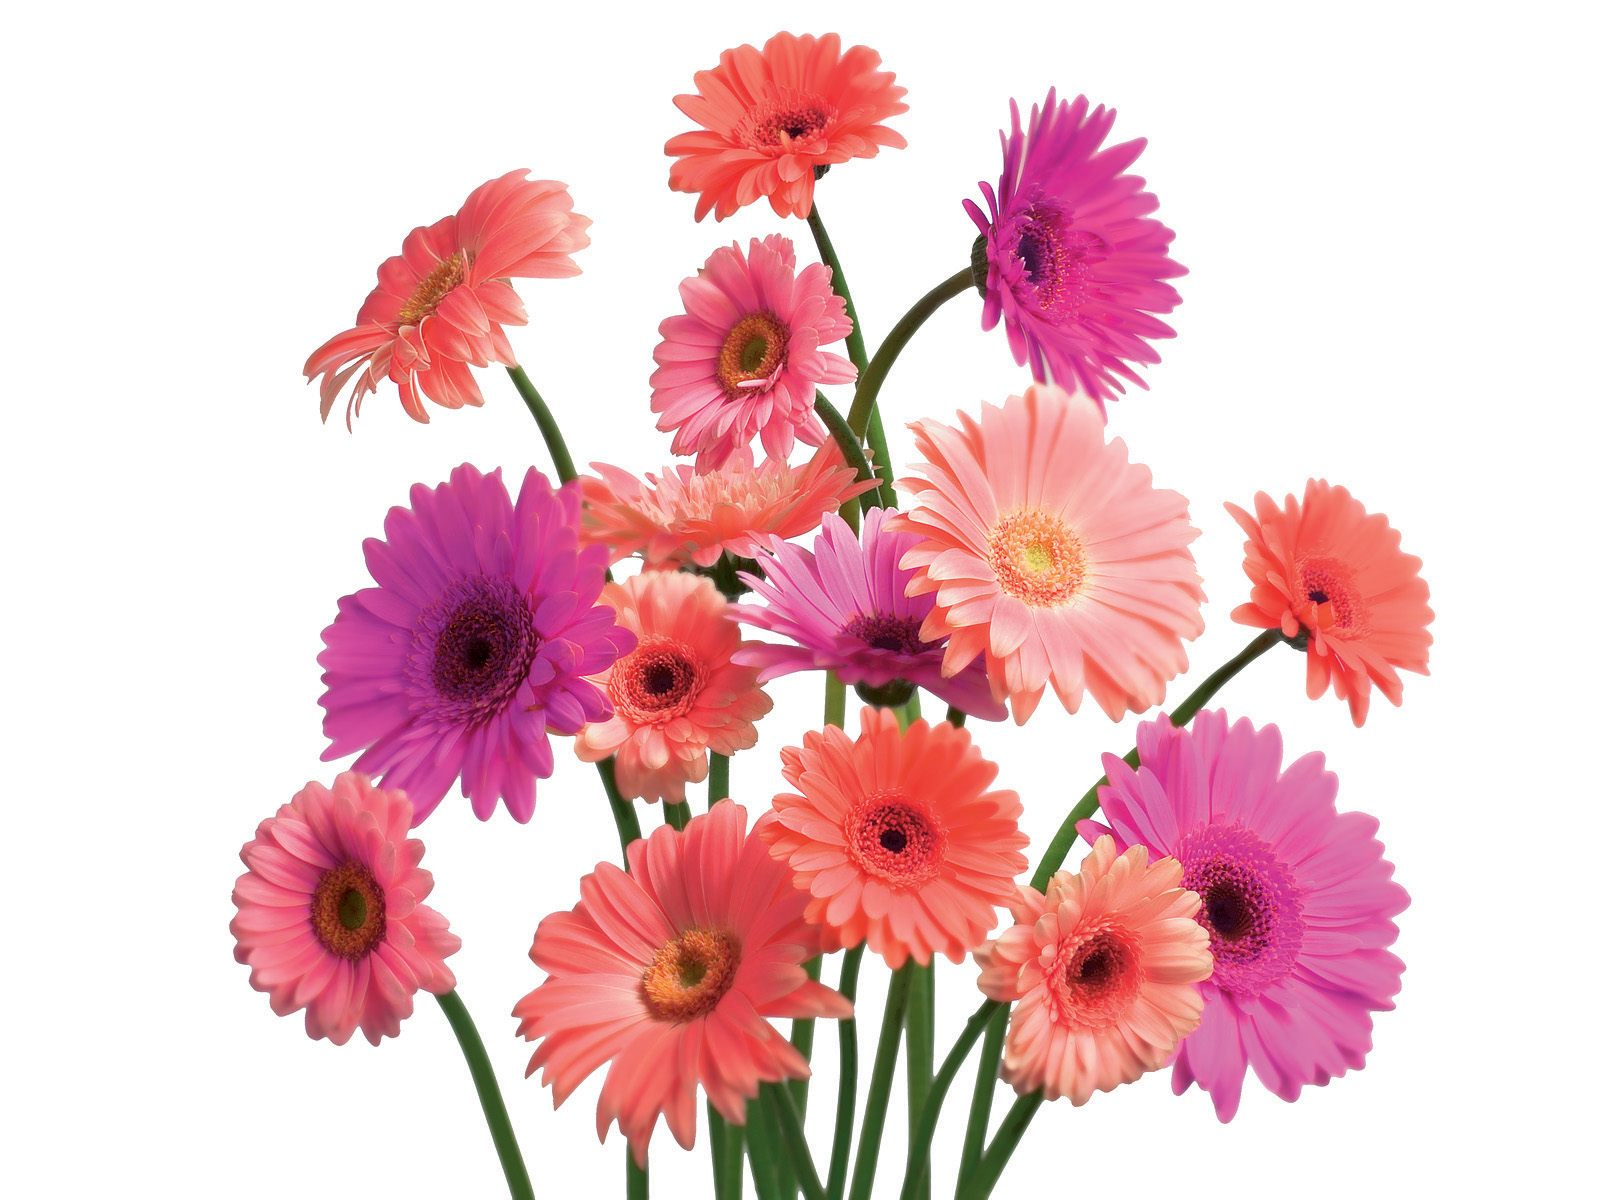 Gerbera Daisy Cluster Wallpapers HD Wallpapers 1600x1200